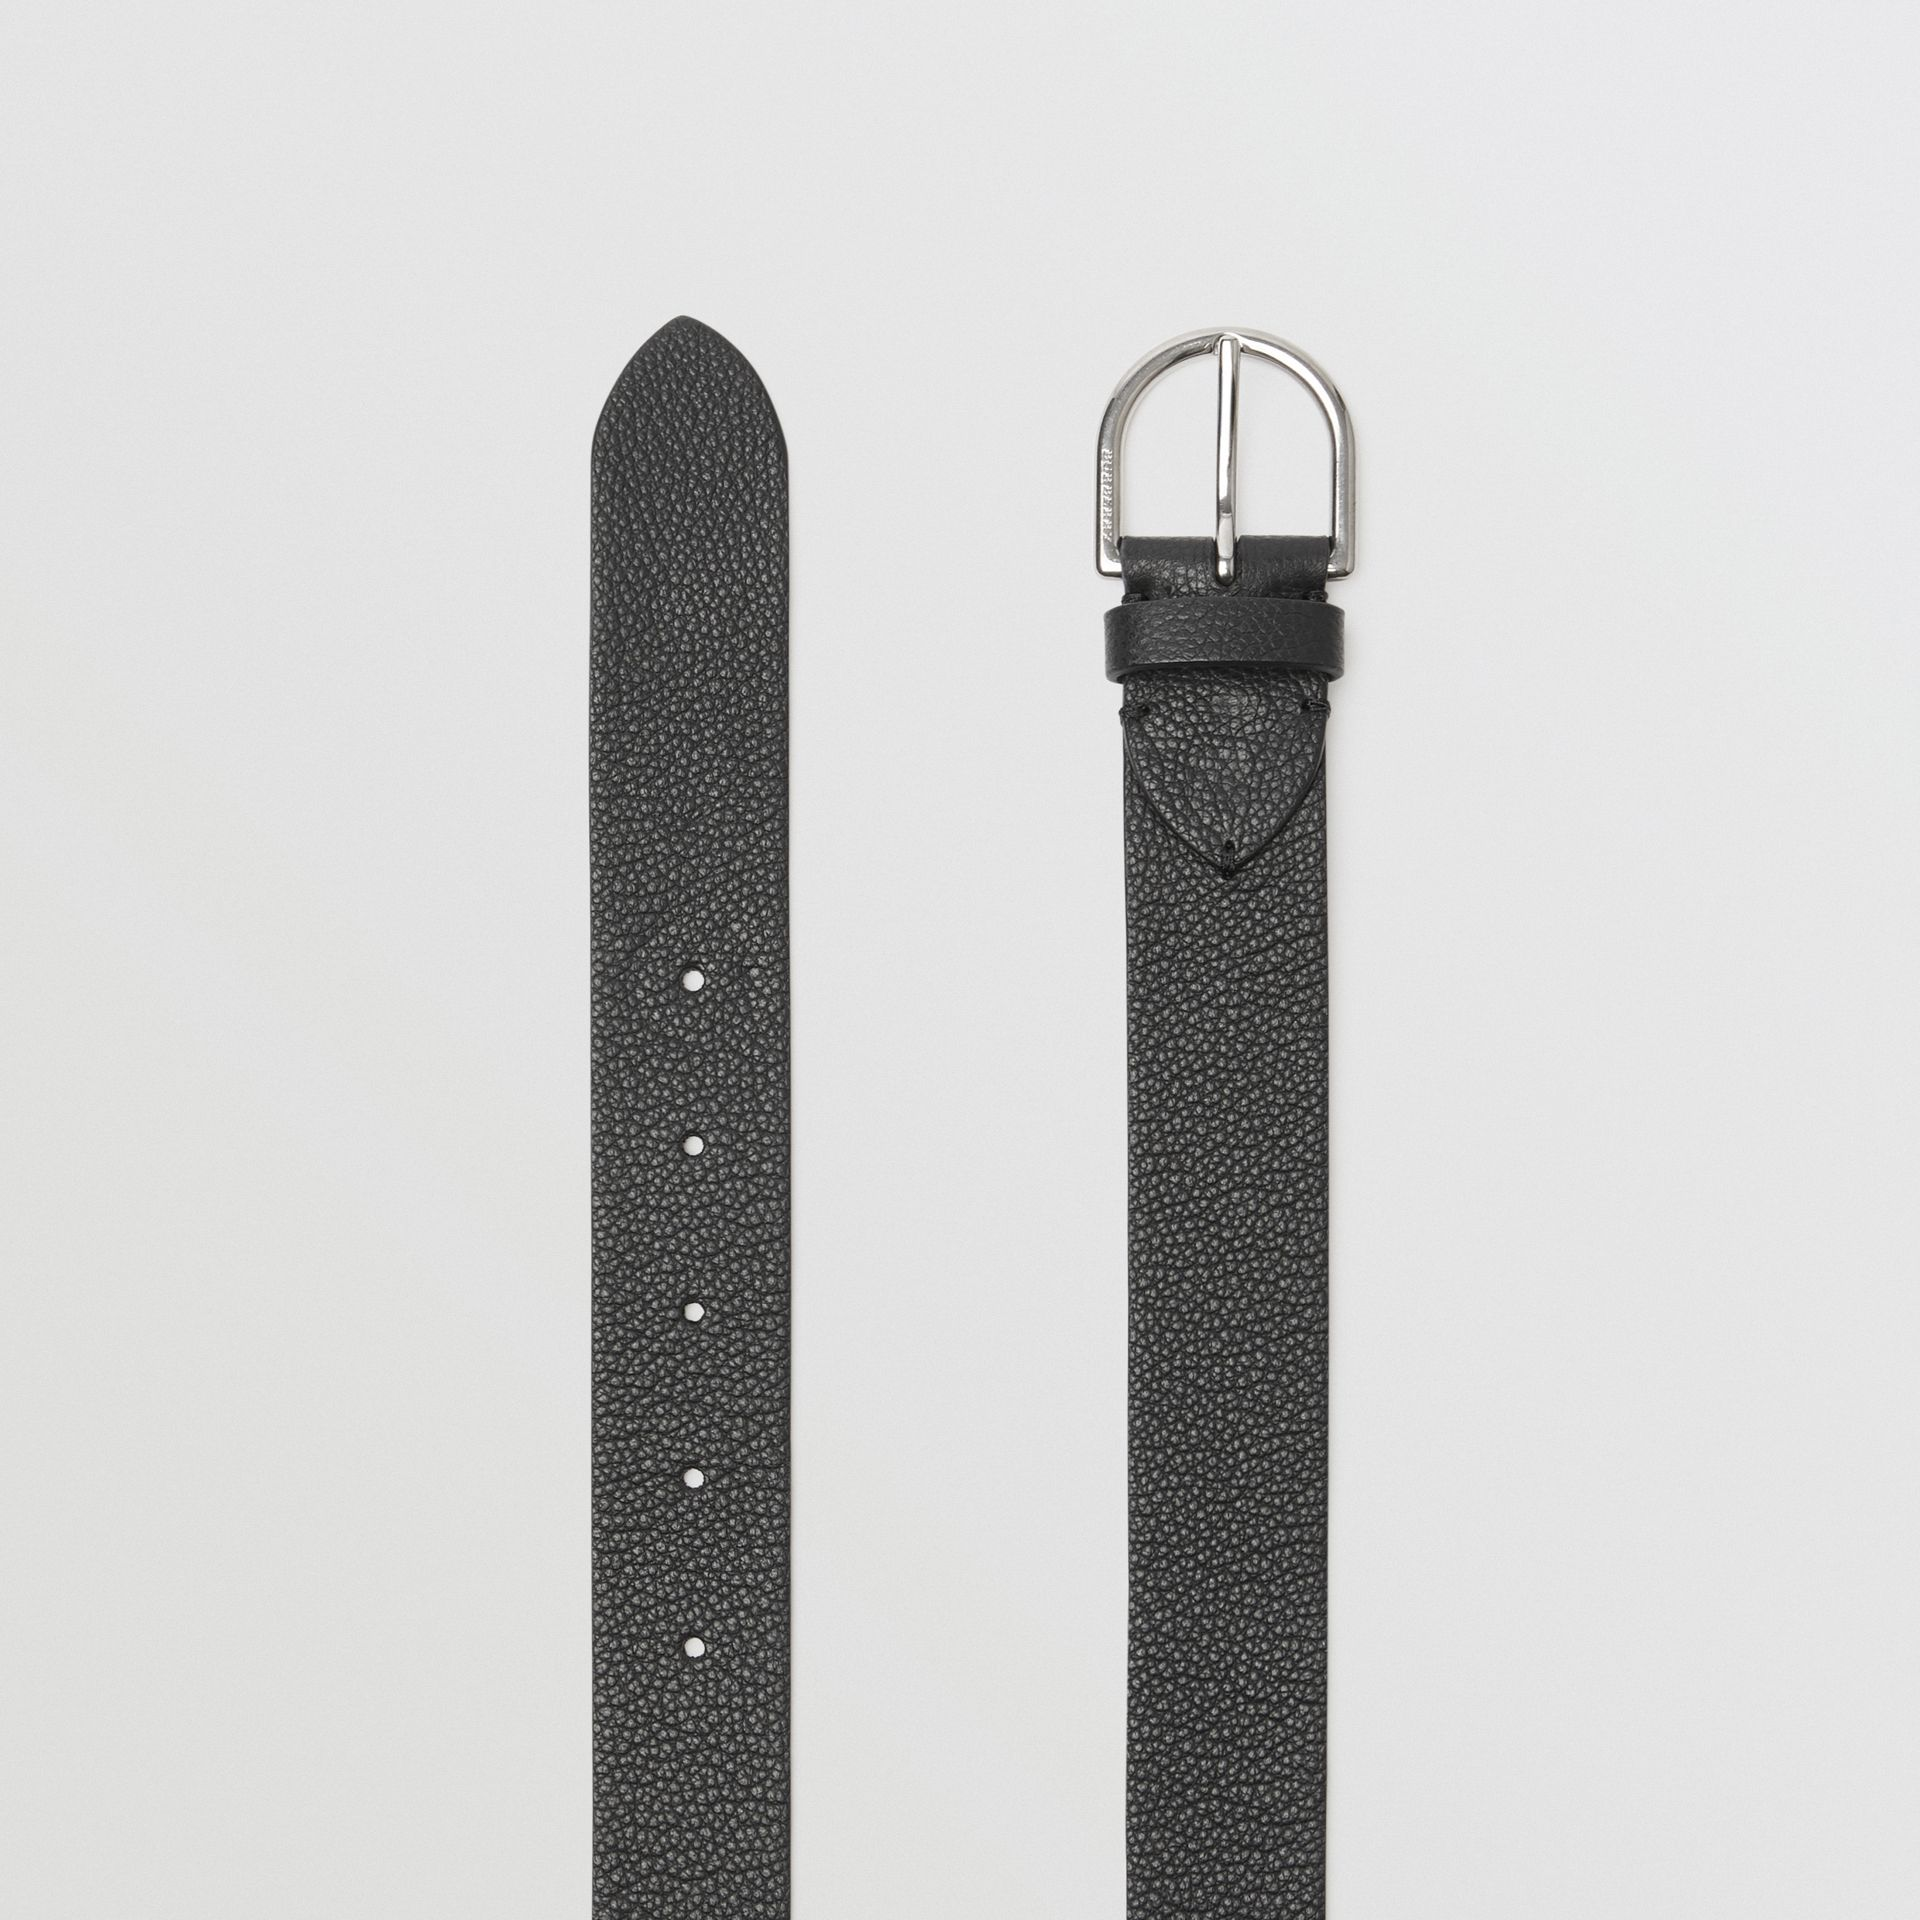 D-shaped Buckle Grainy Leather Belt in Black - Men | Burberry United Kingdom - gallery image 5